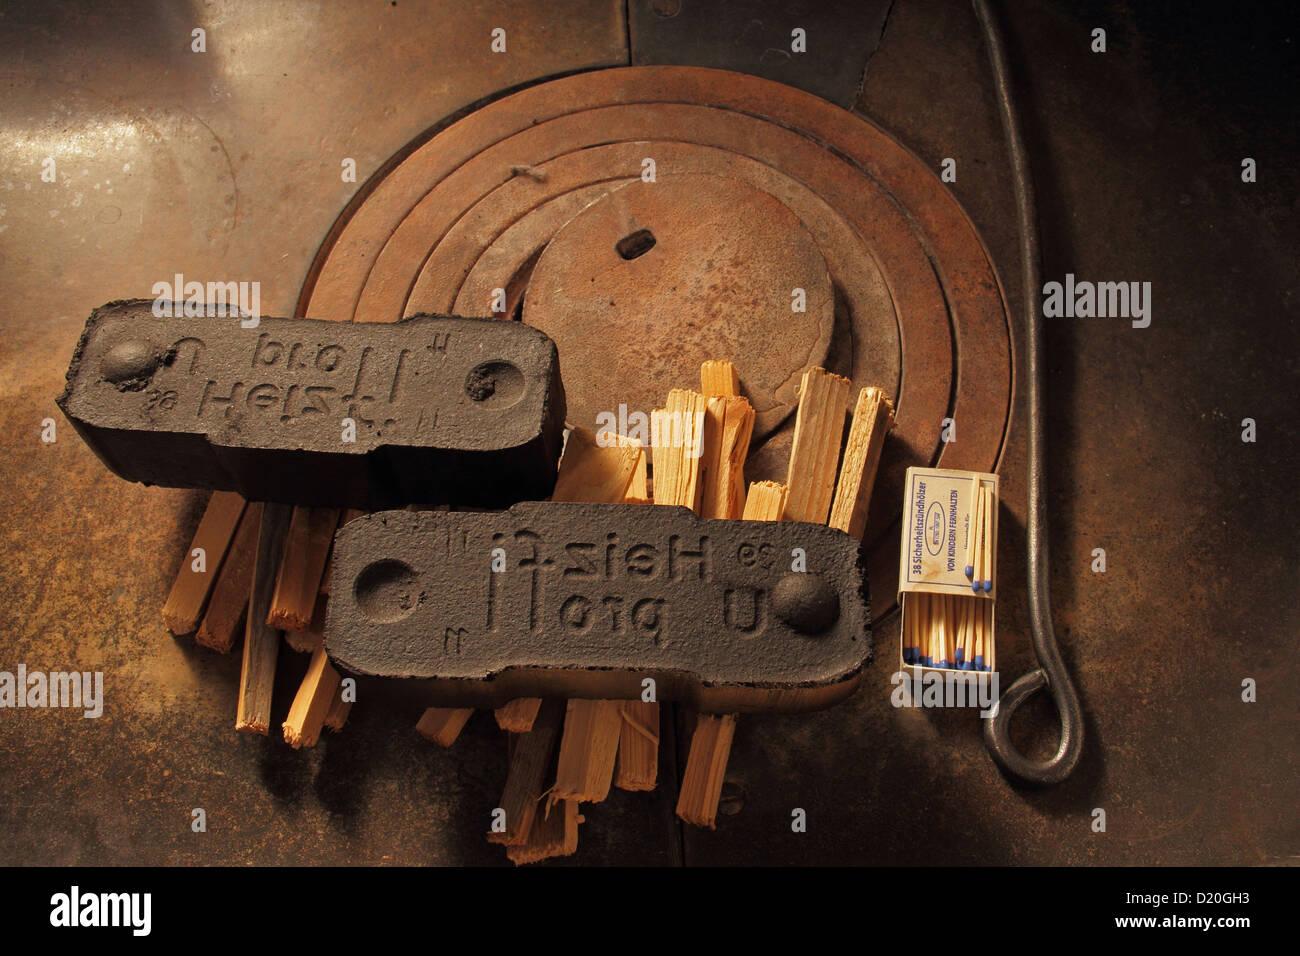 Two Briquettes and some wood on an old stove - Stock Image